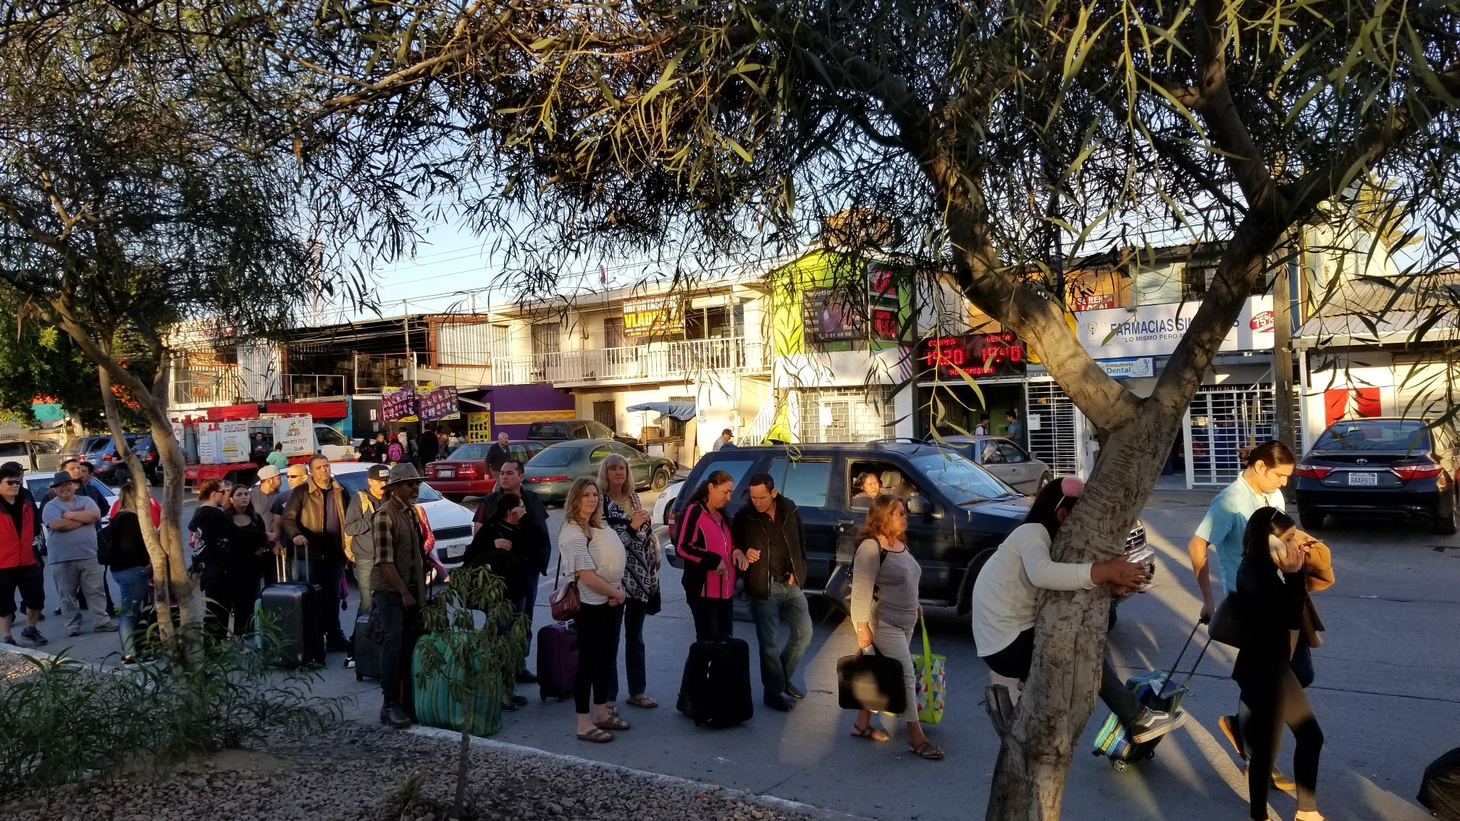 As United States Border Patrol decided to close one of the busiest border crossings in the world Sunday, firing tear gas and bullets at a group of migrants trying to claim asylum there, many people who wanted to enter the United States from Tijuana…